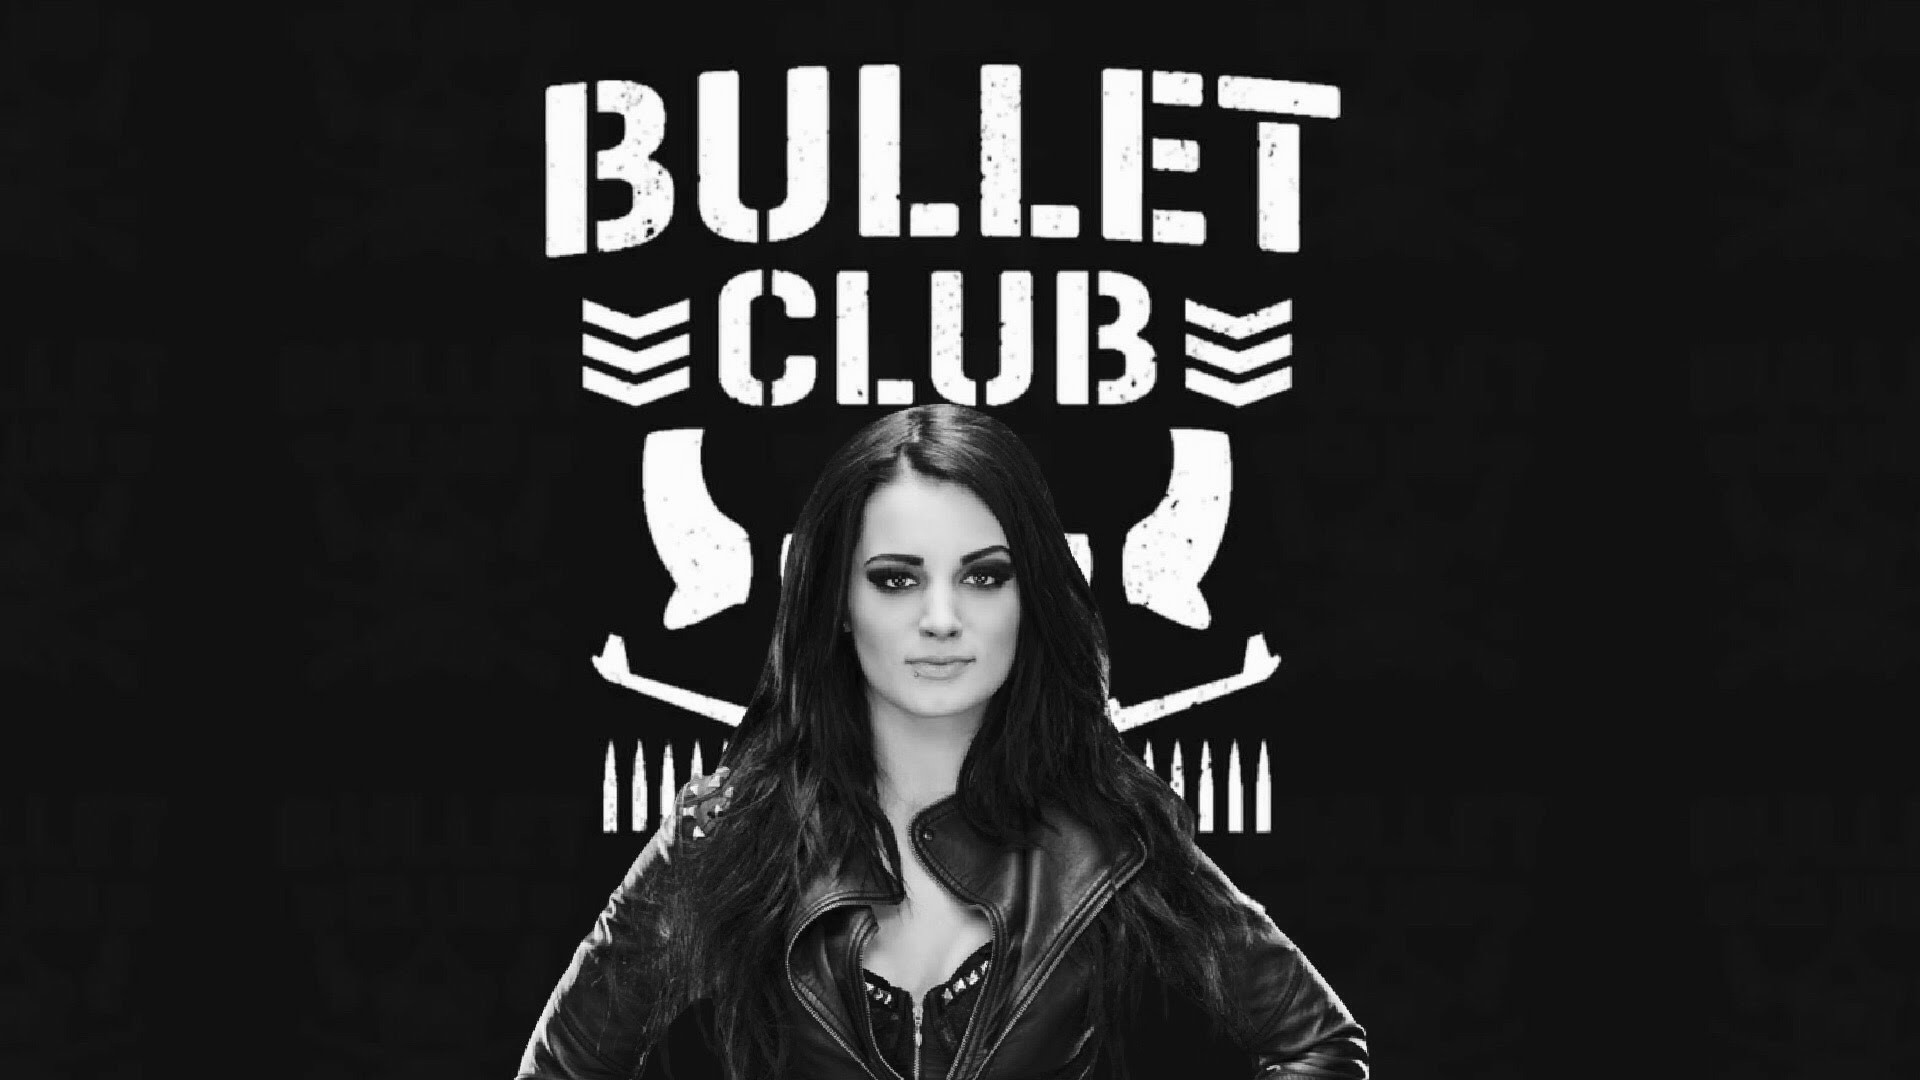 1920x1080 WWE Paige Bullet Club Entrance Video